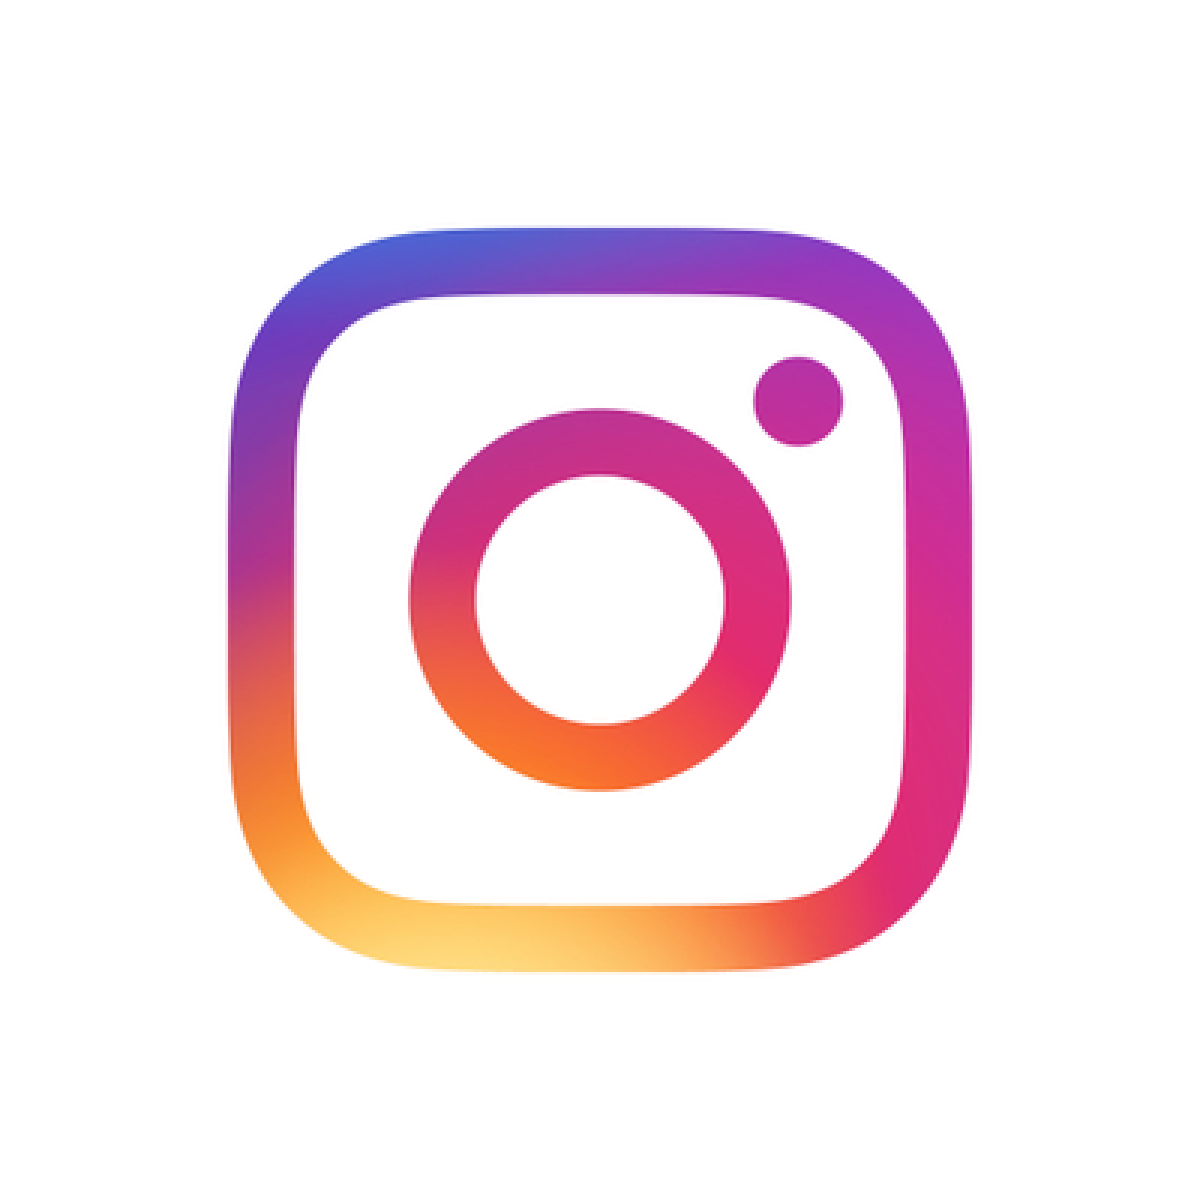 Instagram to launch a huge redesign for Stories